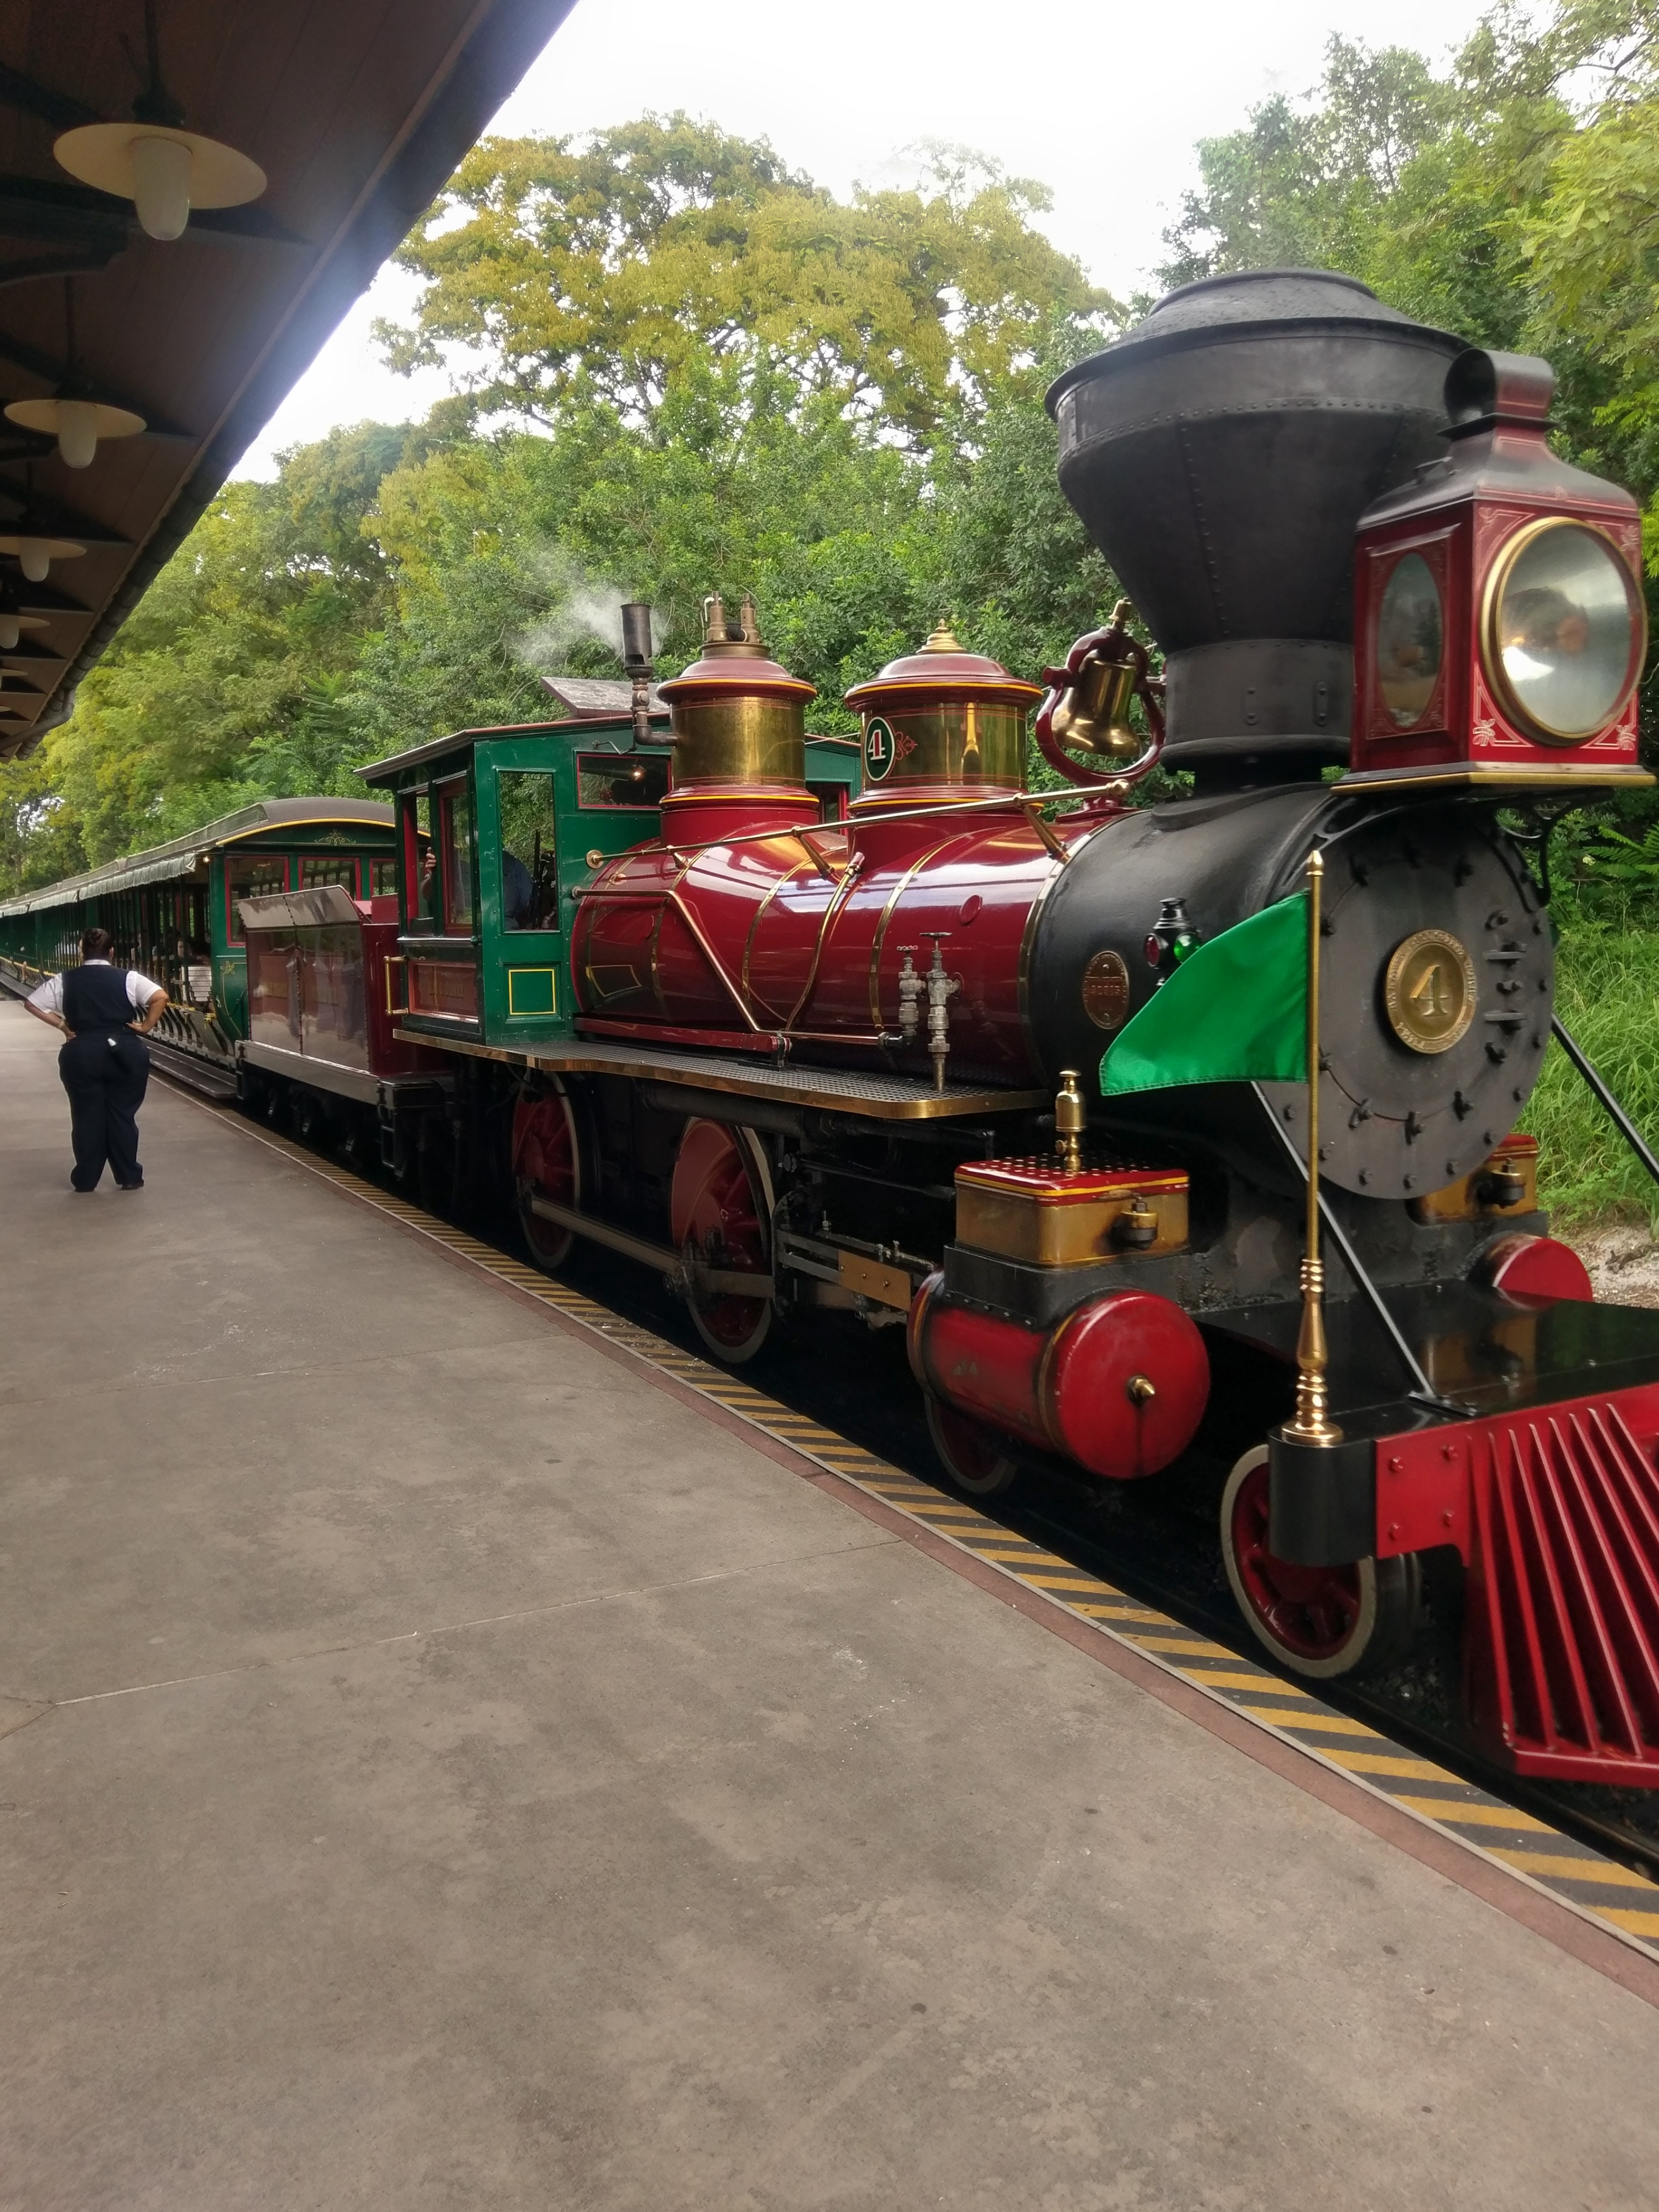 disney world railroad walt orlando outside tour thing see park there leave last first autismkidsontour